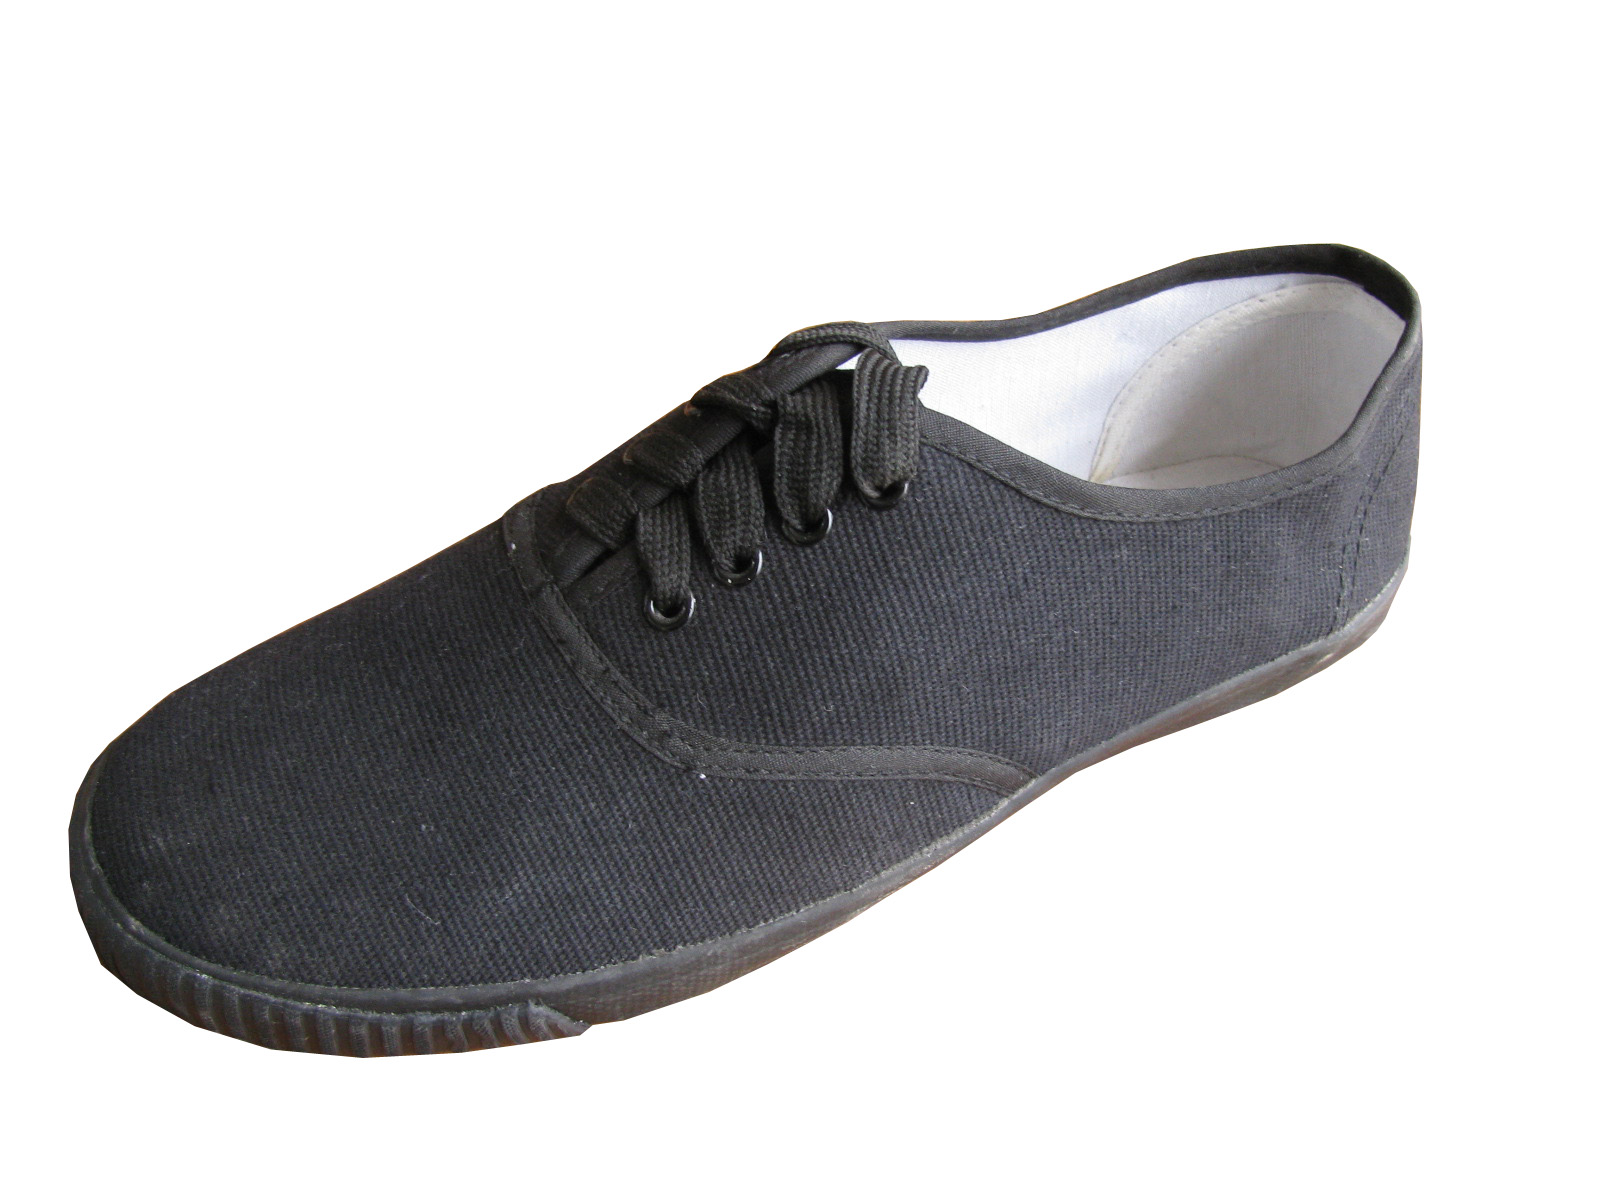 Eco Women's Canvas Shoes - All Black